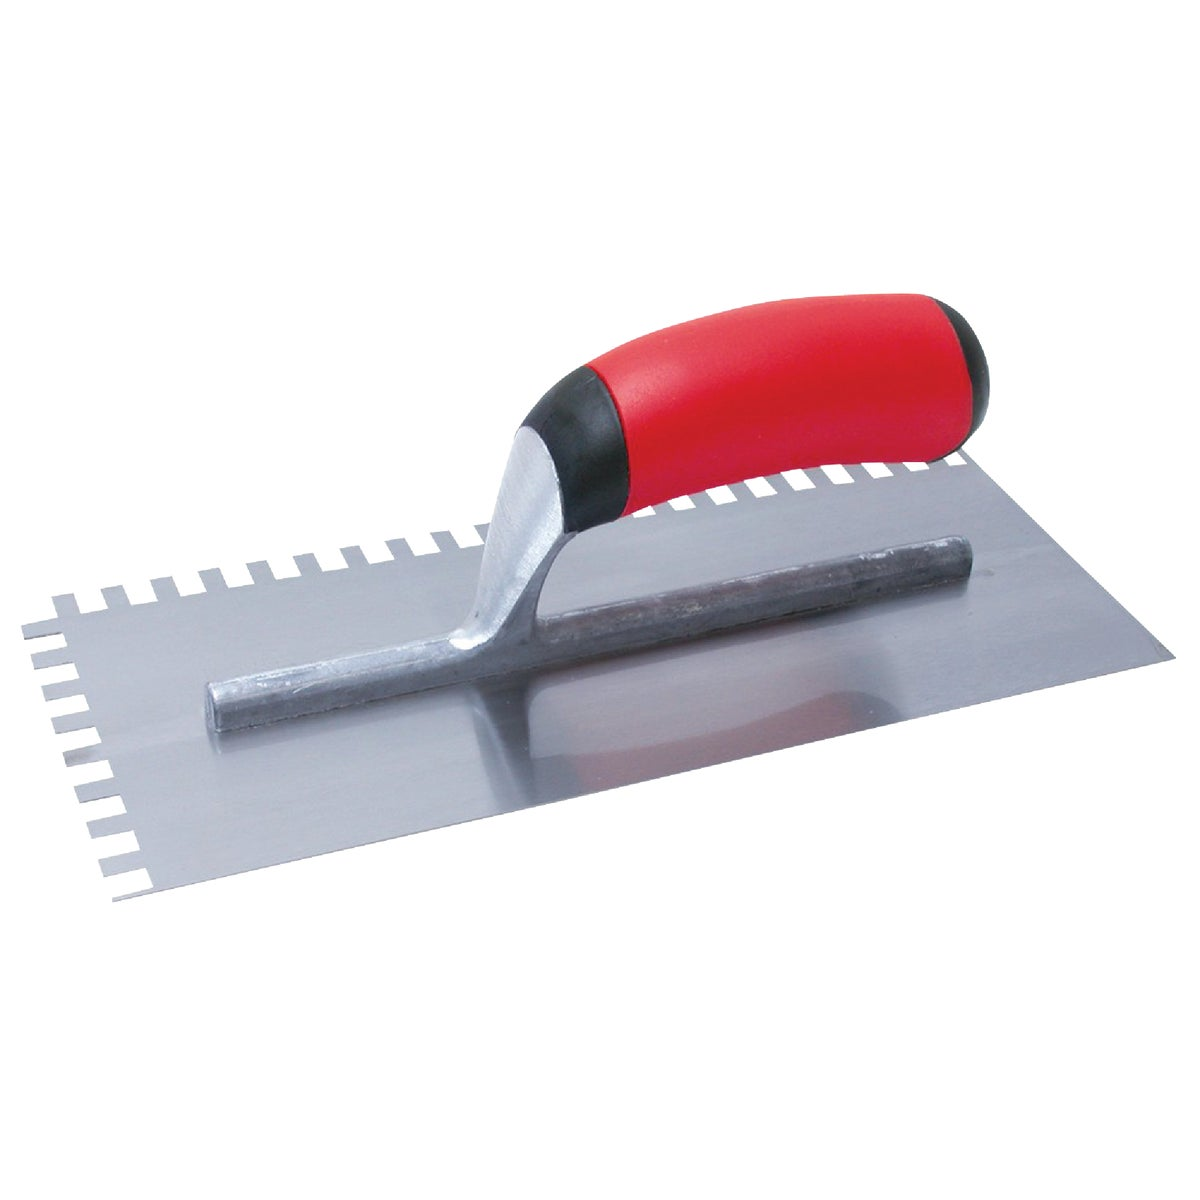 1/16X1/16 NOTCHED TROWEL